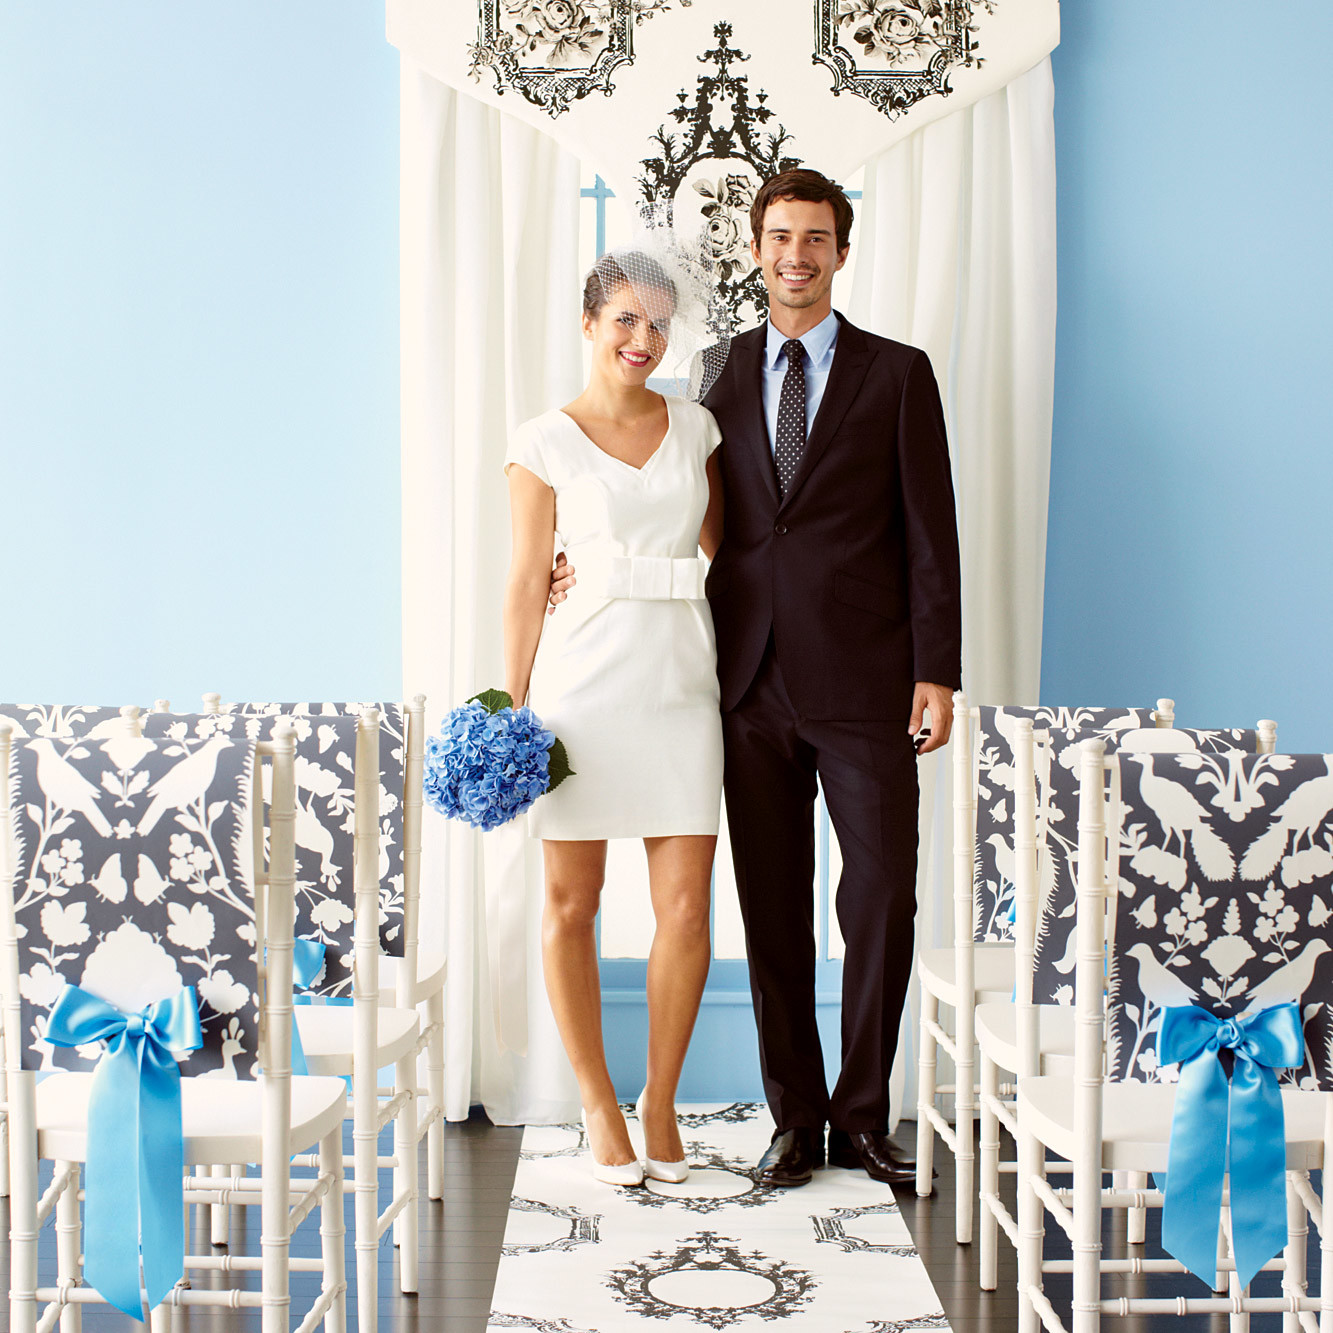 76 Diy Doily Wedding Decorations Martha Stewart Weddings  : wallpaper runner mwd107819sq from motocyclenews.top size 1333 x 1333 jpeg 422kB